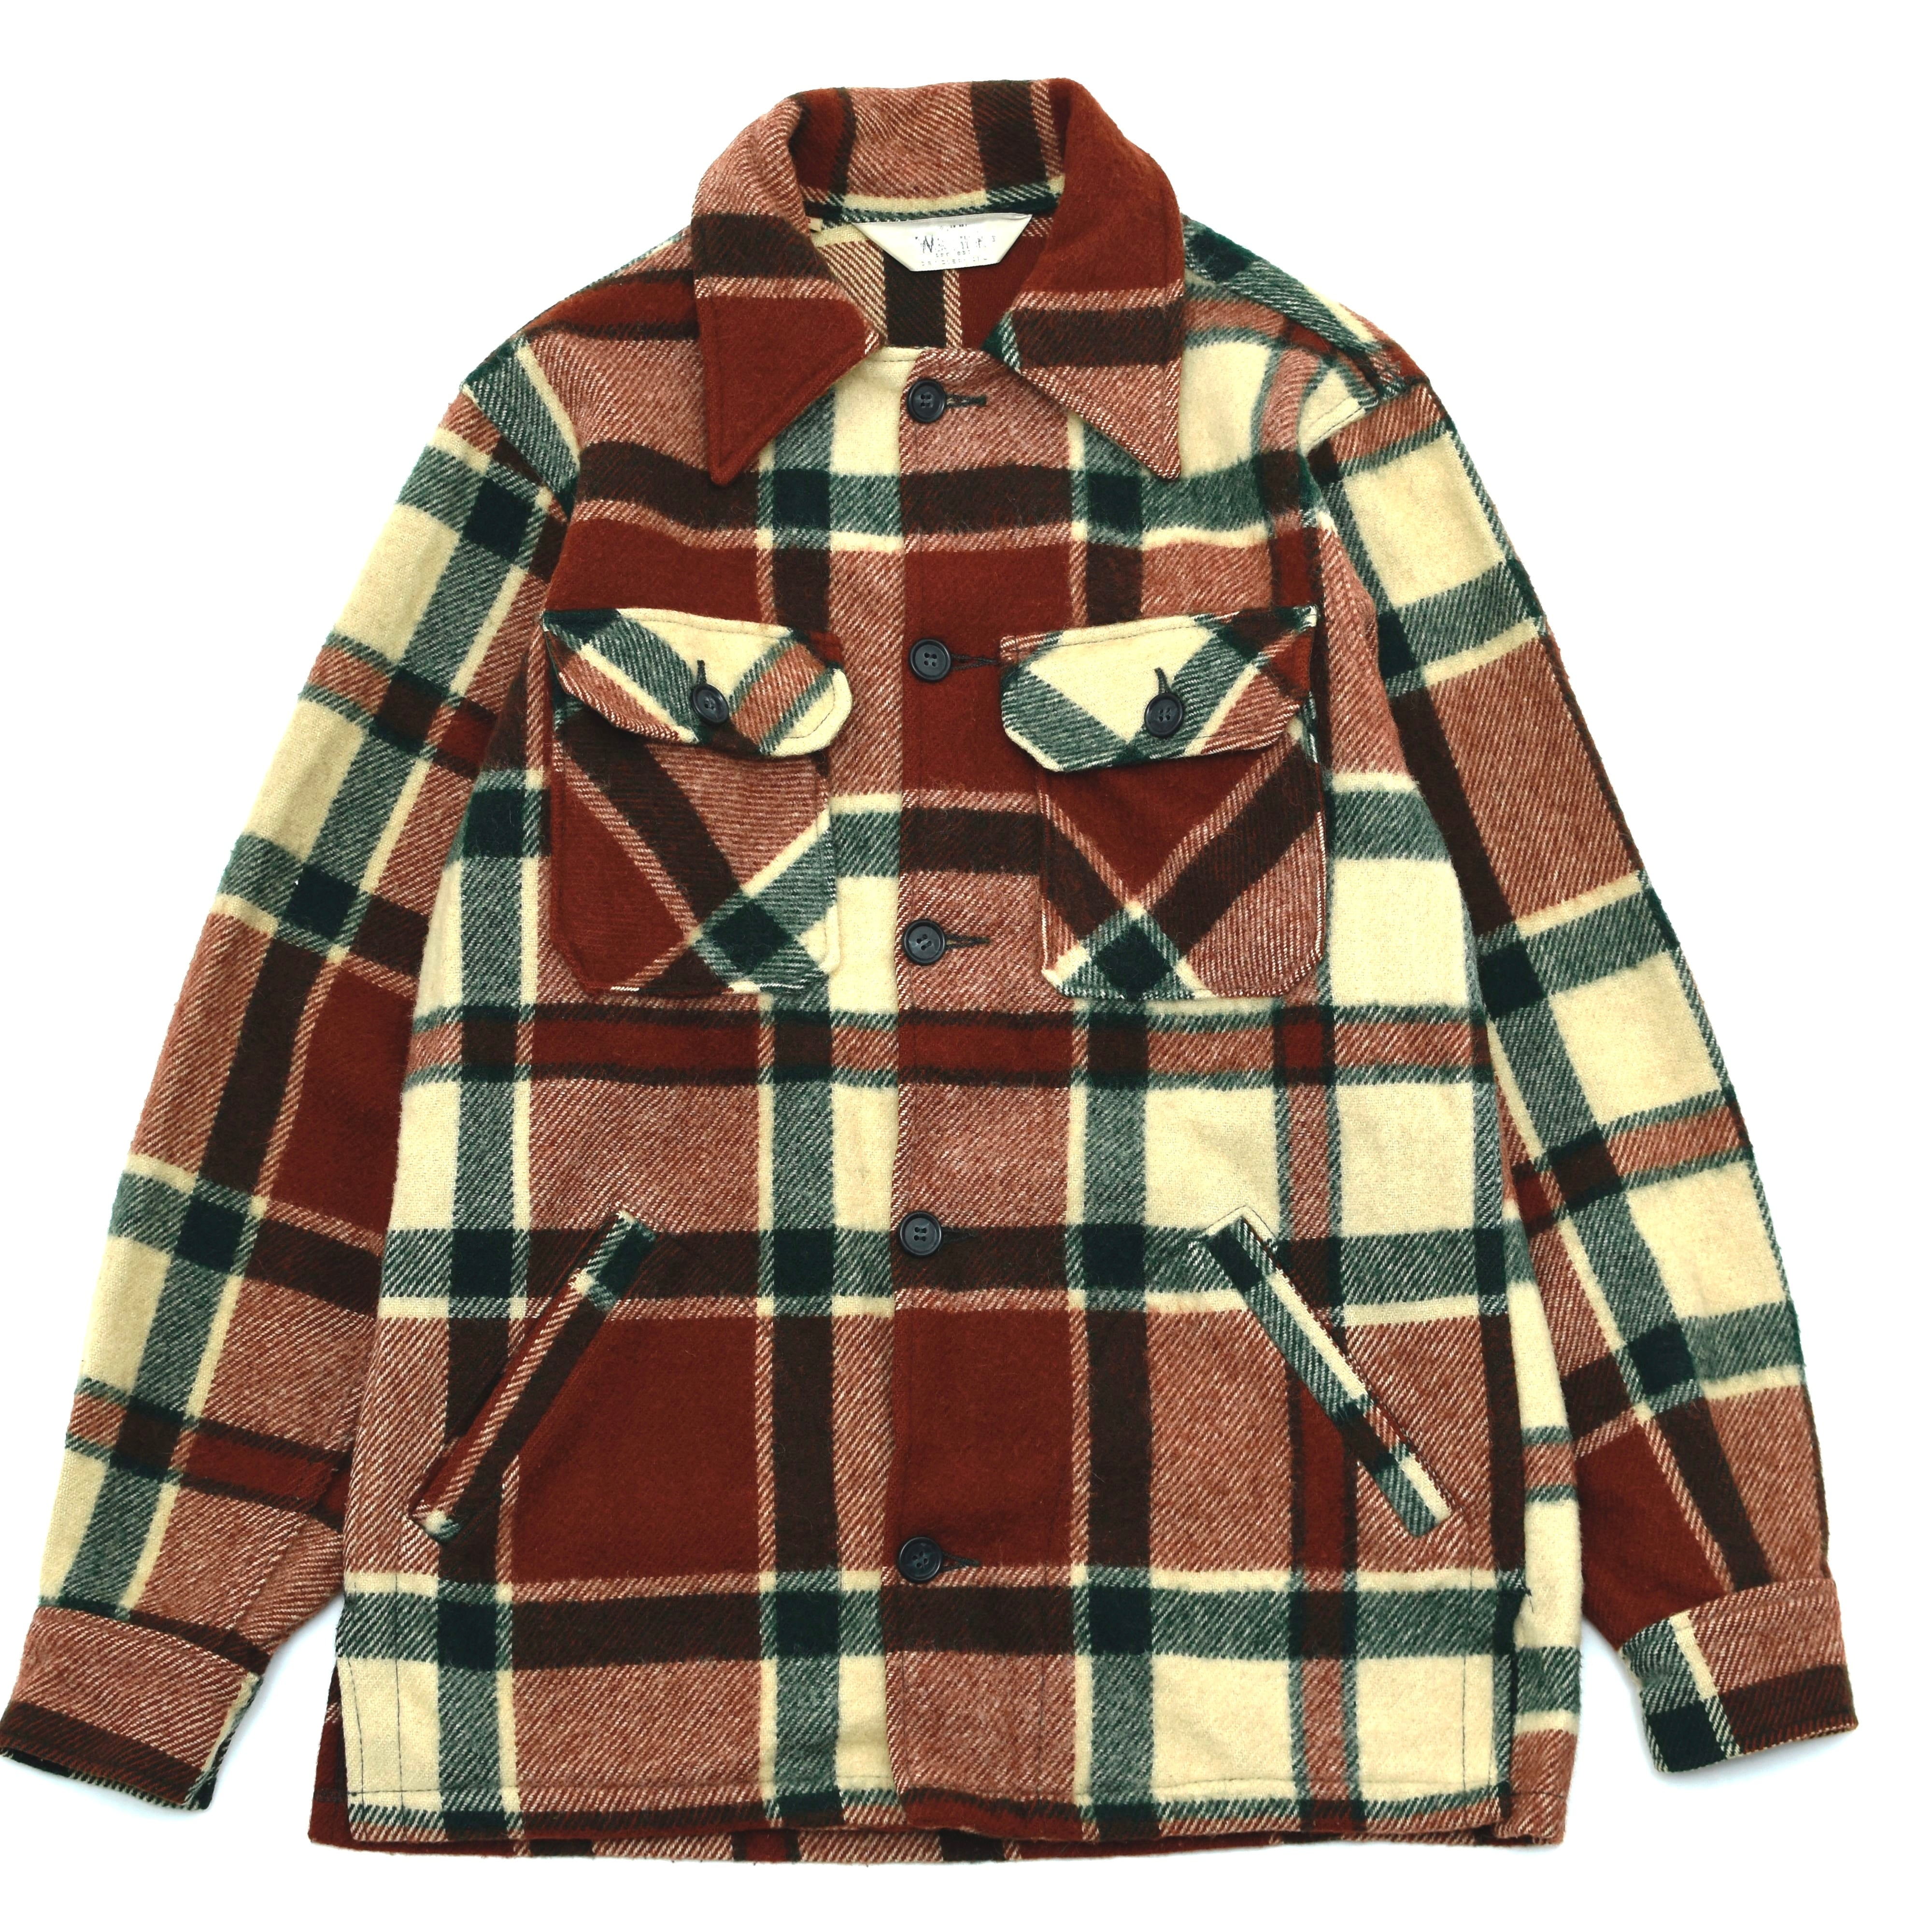 70's vintage WOOLRICH check shirt jacket